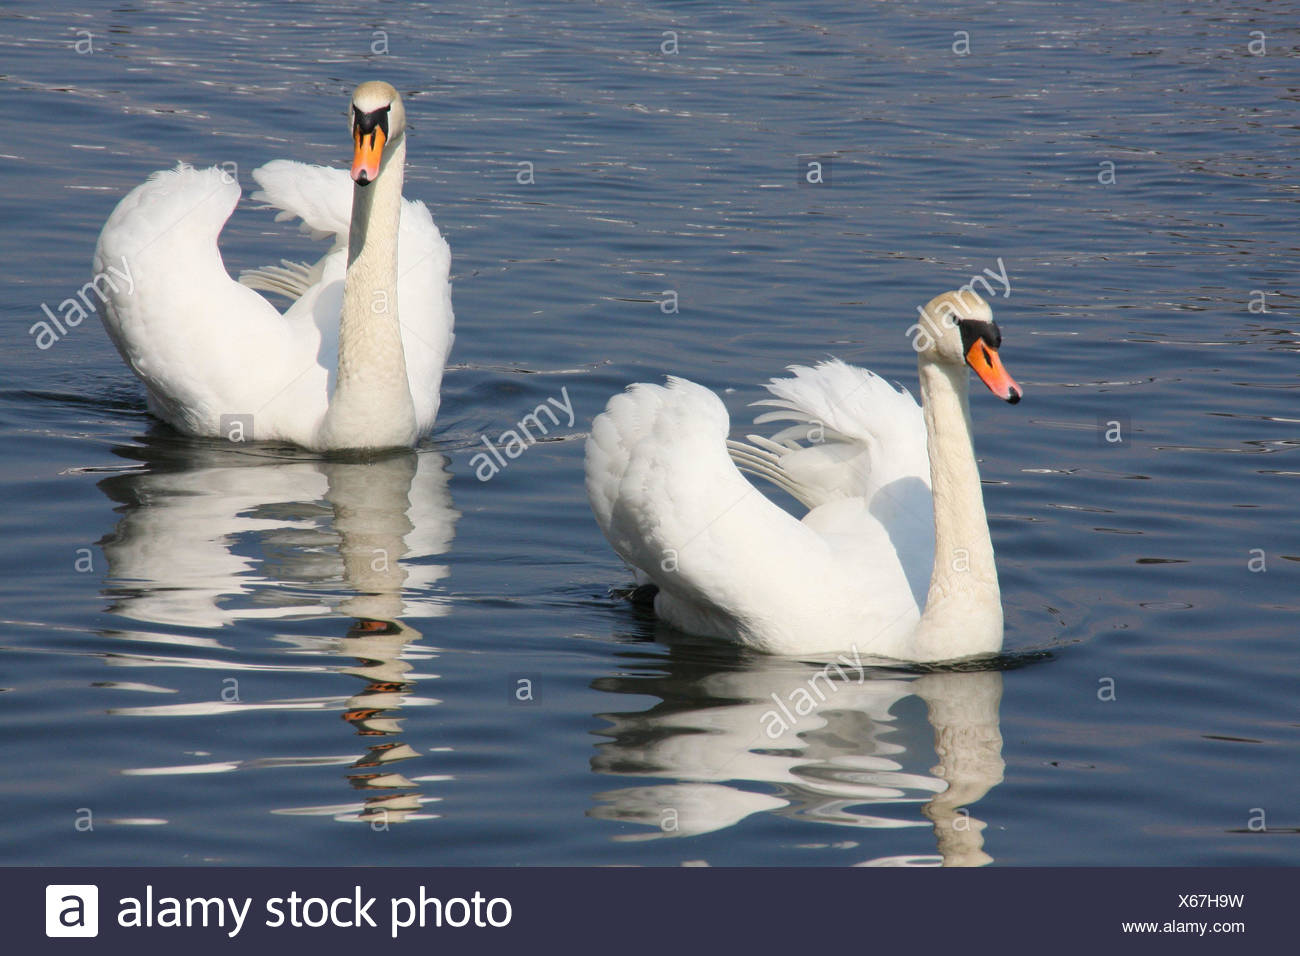 Lake, swans, couples, animals, hump swans, birds, two, swim, couple, in pairs, Poland, nature, - Stock Image